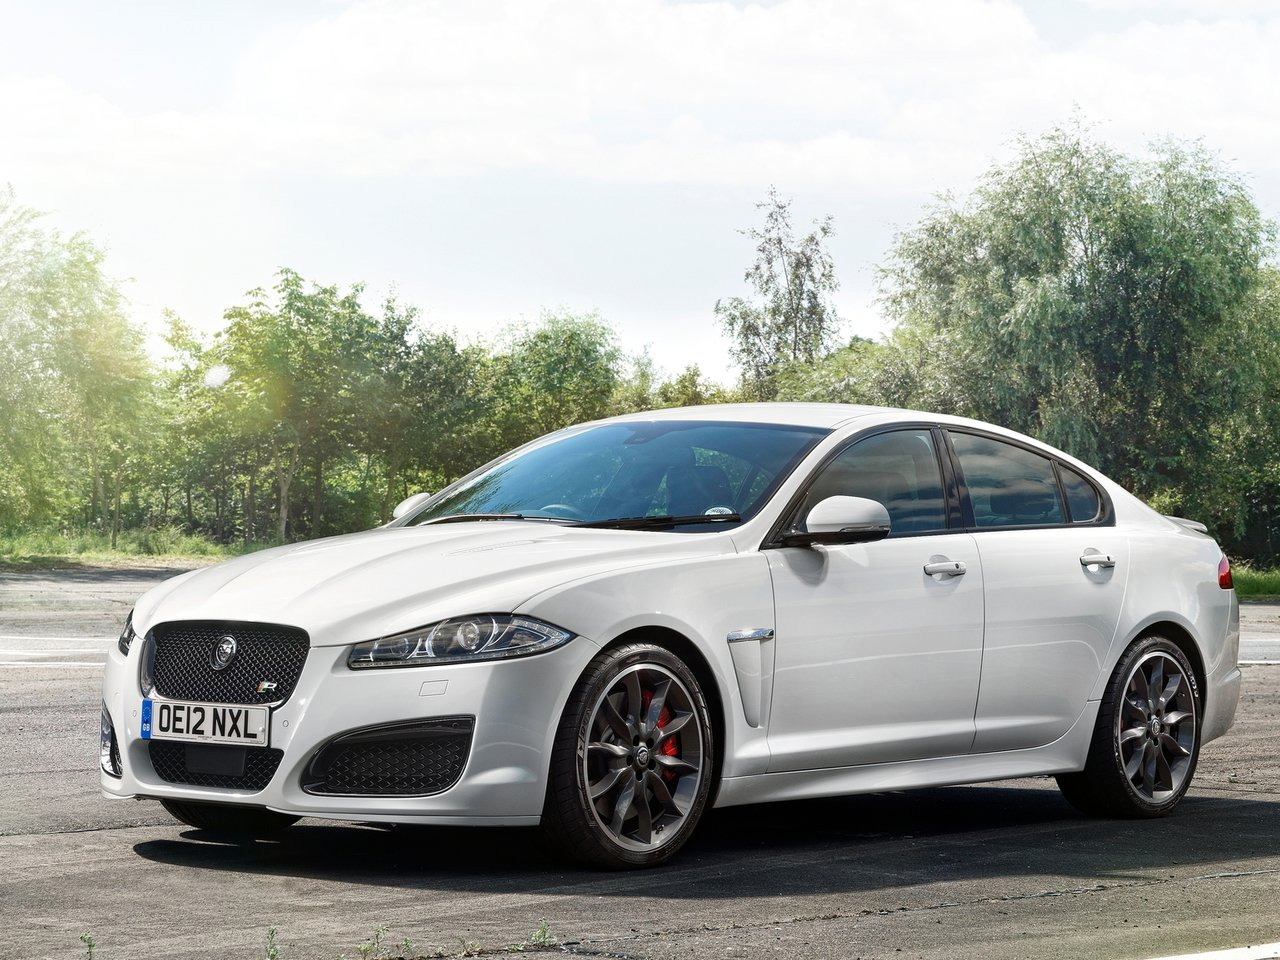 2013 Jaguar XFR Speed | Cars Sketches